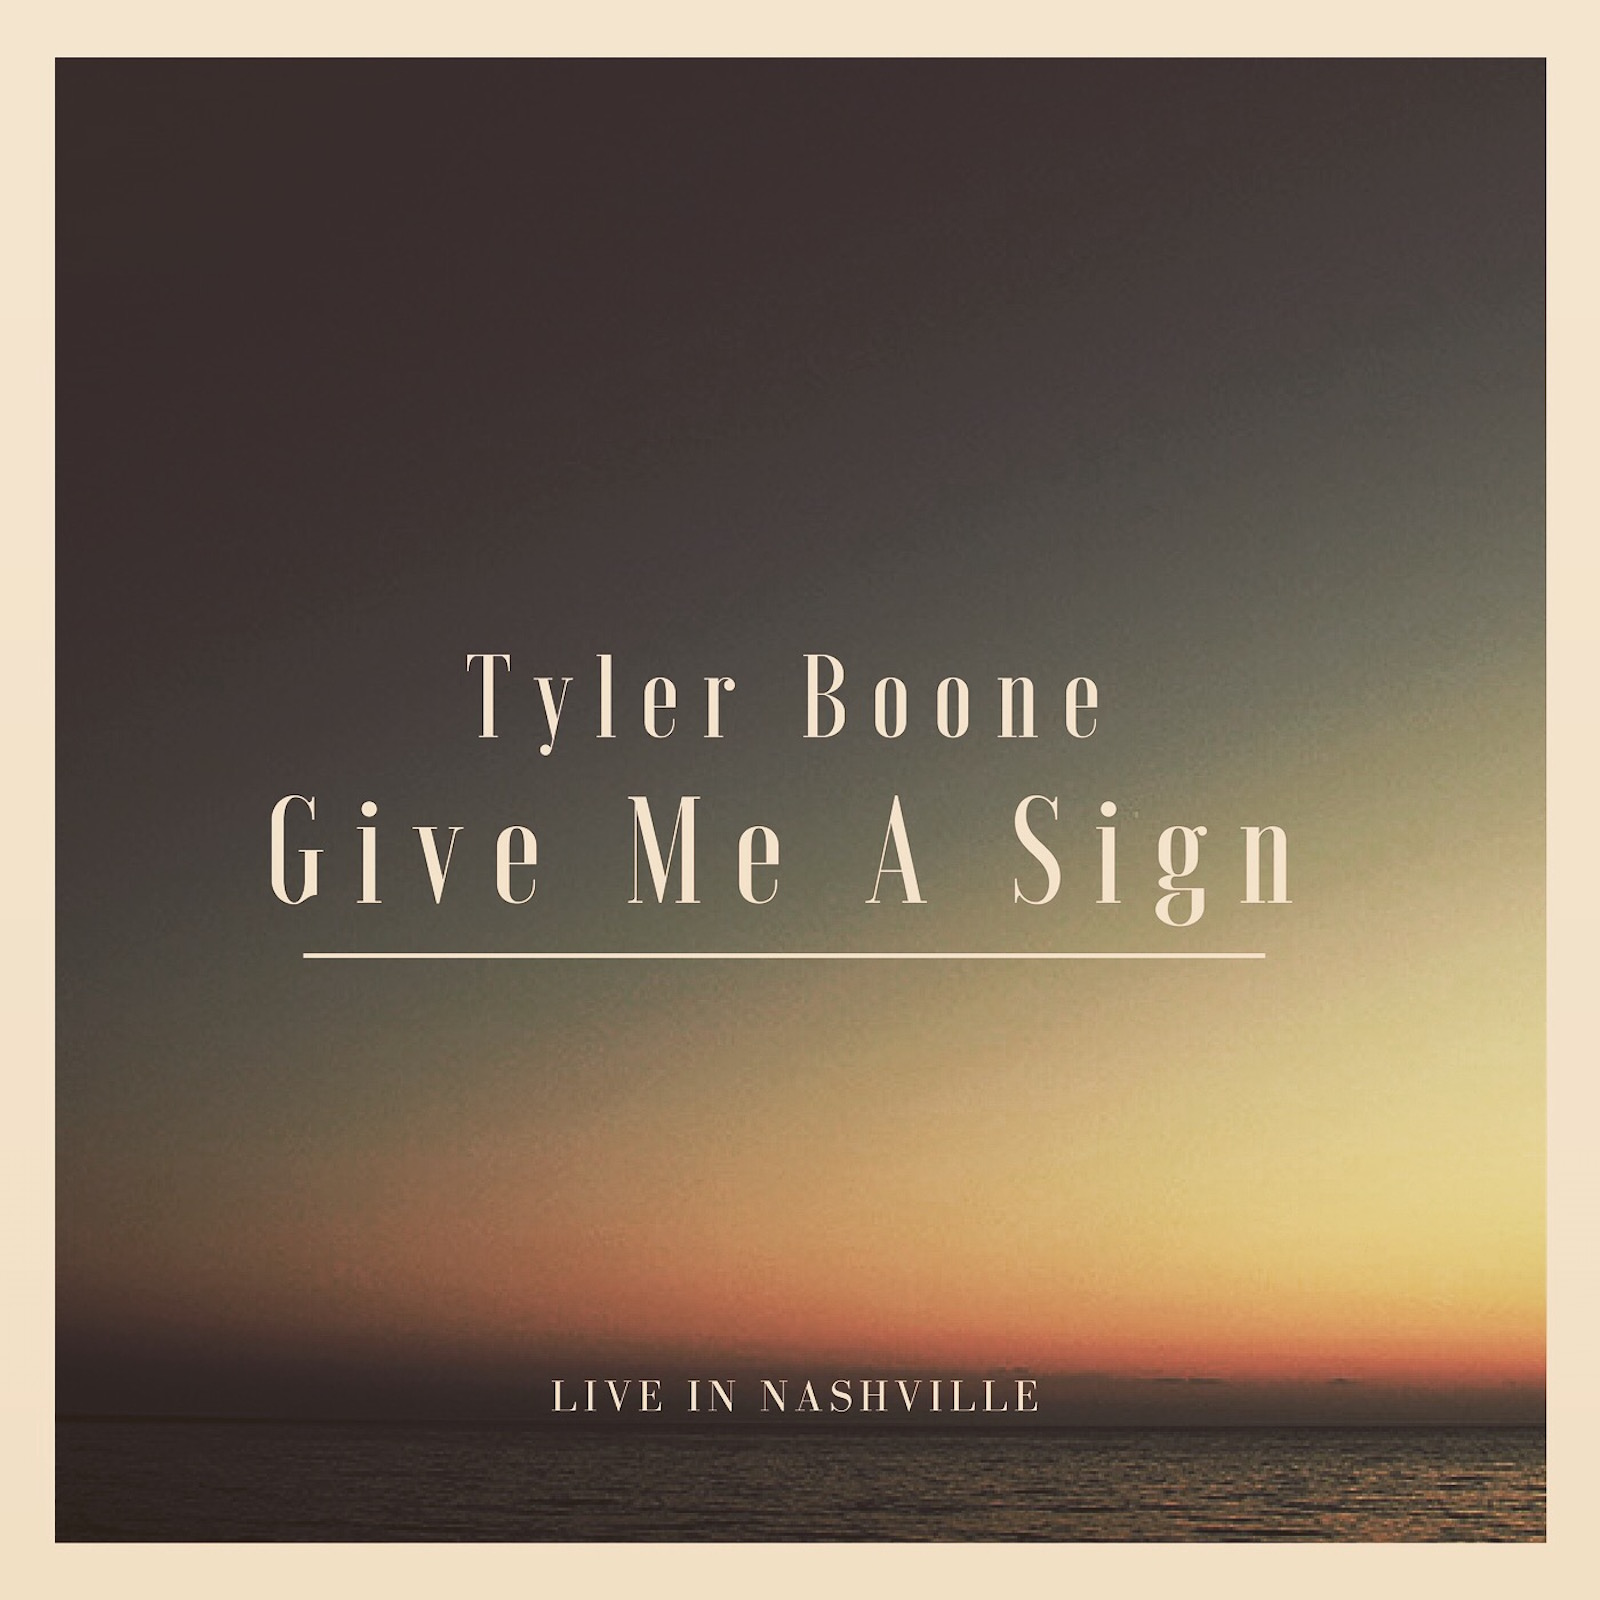 Tyler Boone - Give Me A Sign (Live In Nashville) Cover Art.JPG